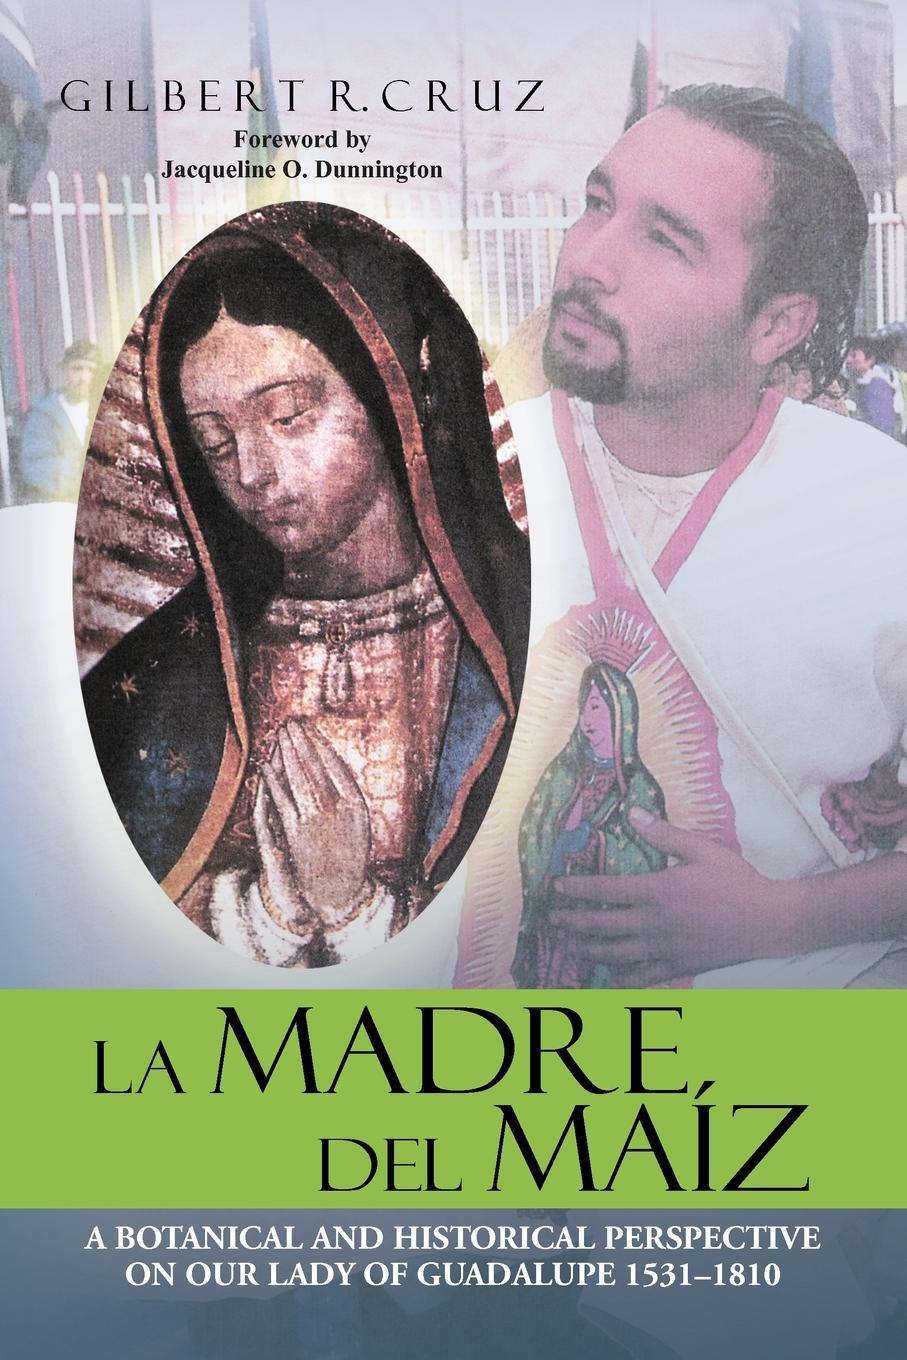 Gilbert R. Cruz LA MADRE DEL MAIZ. A BOTANICAL AND HISTORICAL PERSPECTIVE ON OUR LADY OF GUADALUPE 1531-1810